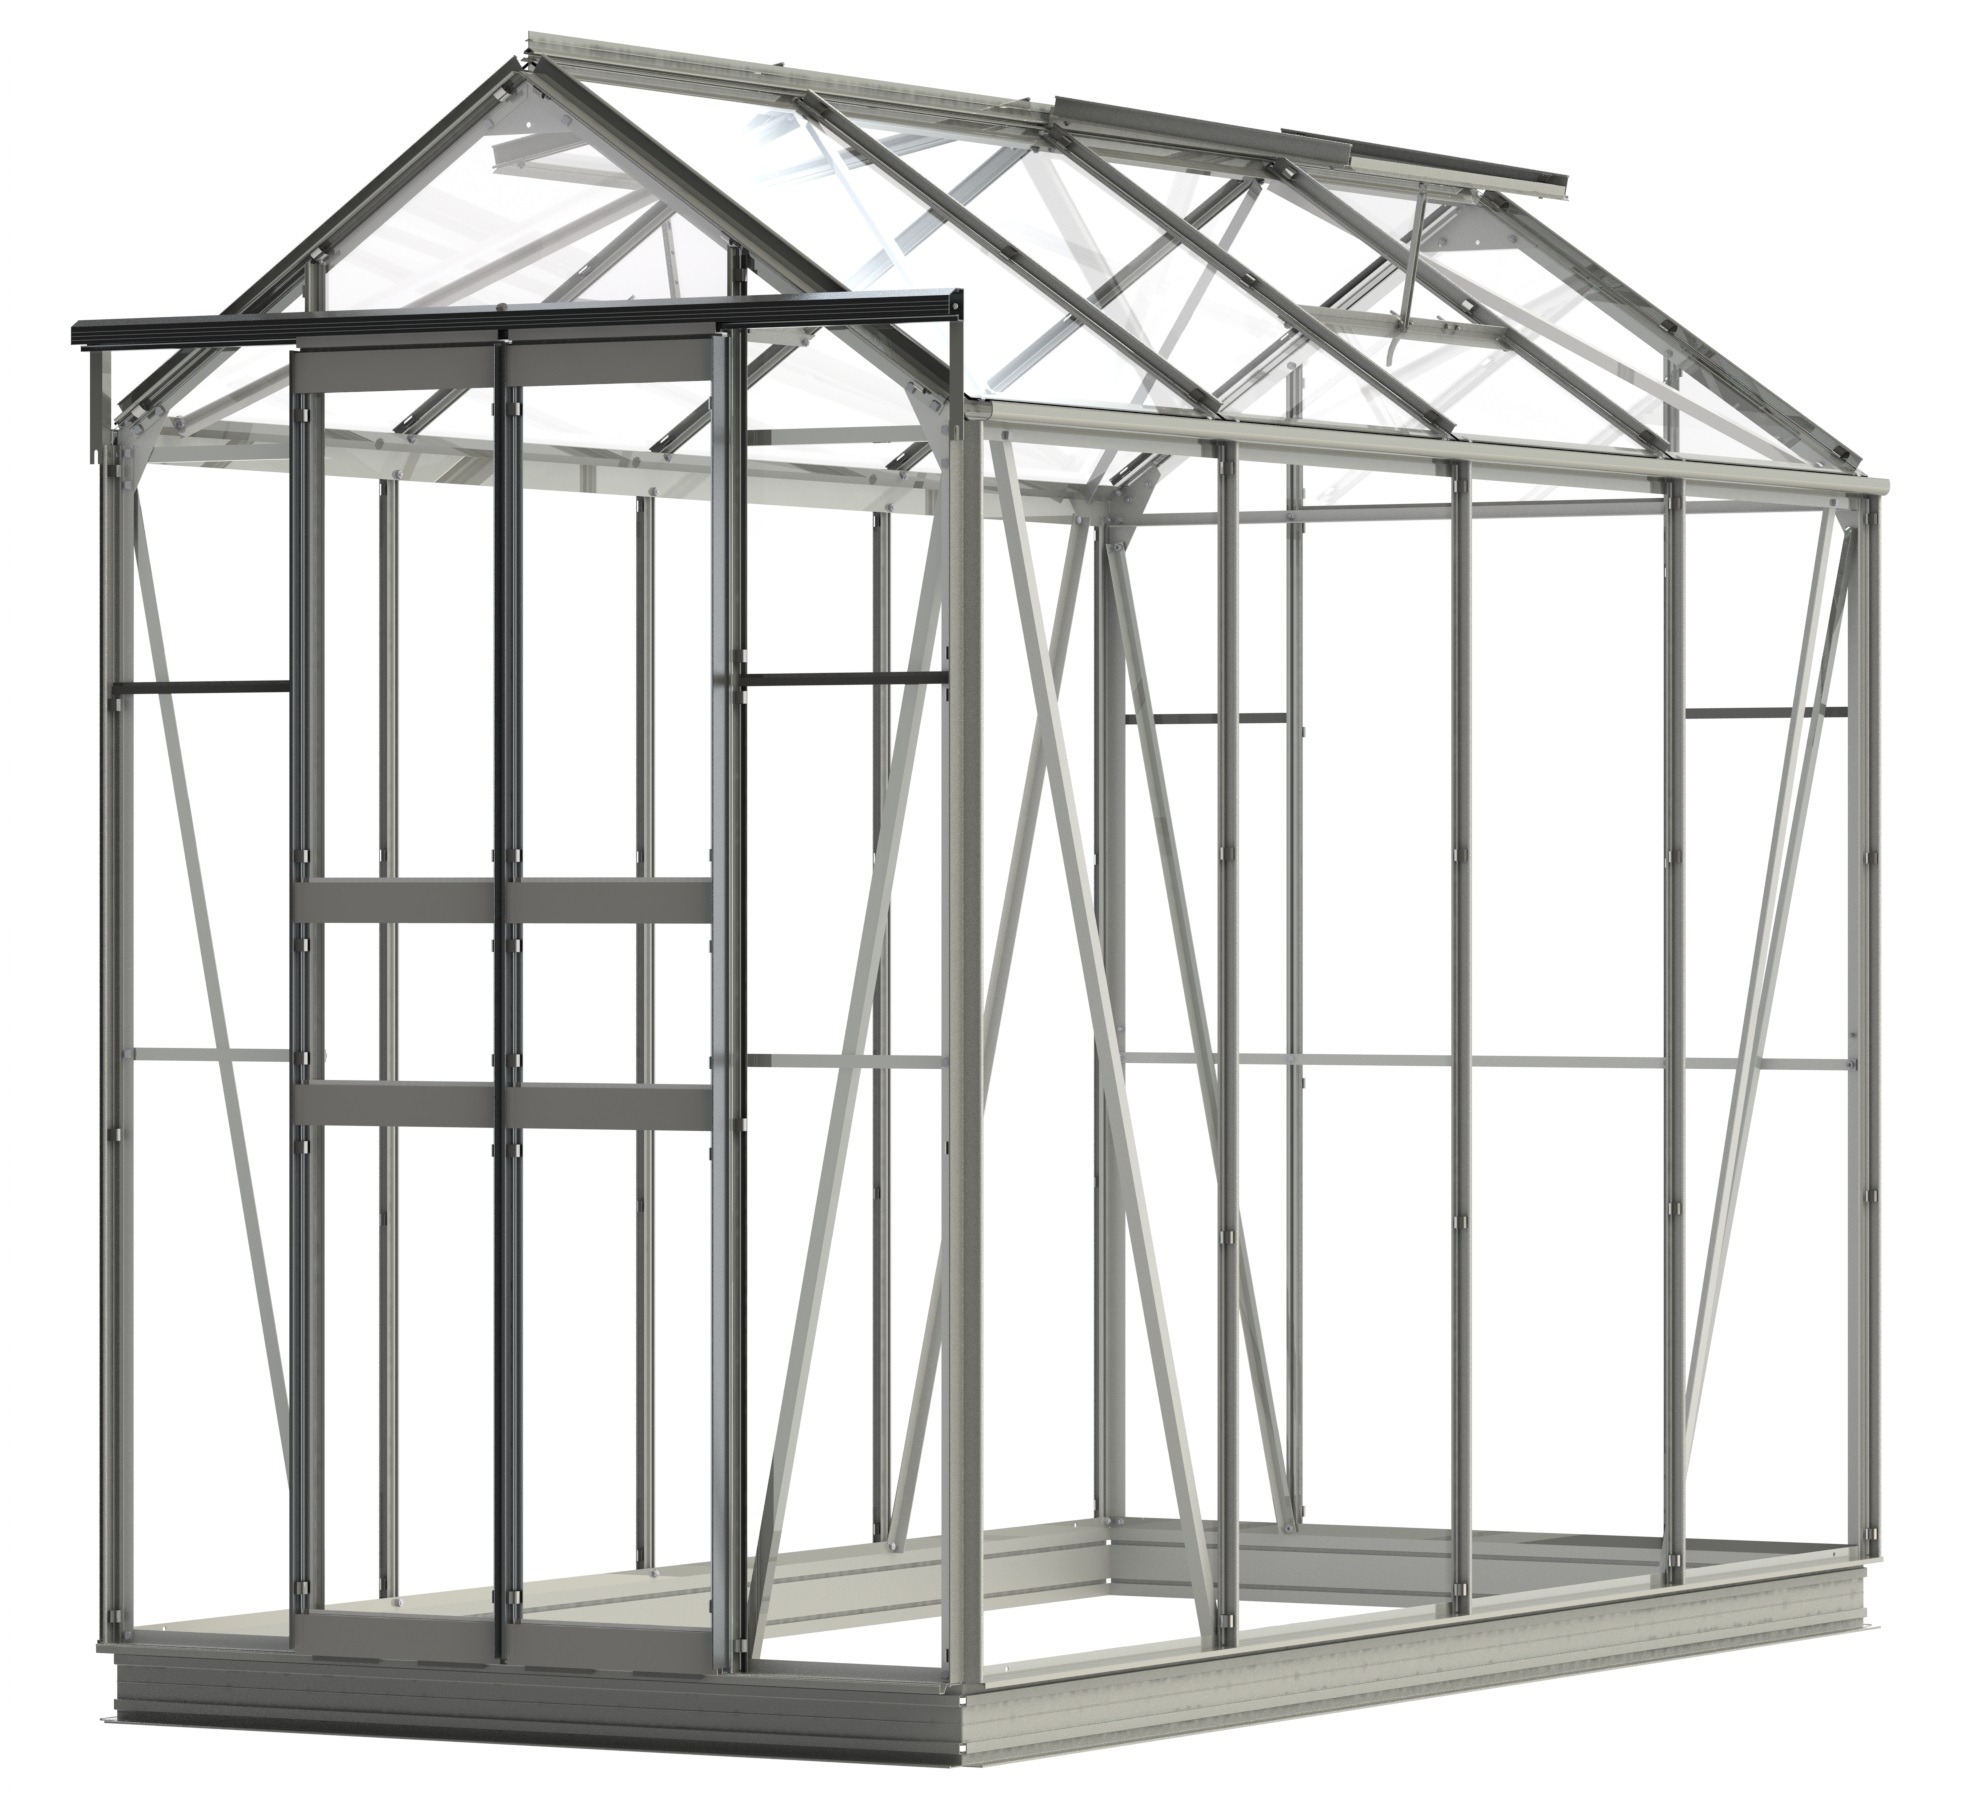 Simplicity Sandon 4x8 greenhouse on 10x8 greenhouse, 6x12 greenhouse, 4x10 greenhouse, 10x14 greenhouse, 5x5 greenhouse, 8x16 greenhouse, 30x60 greenhouse, 8x6 greenhouse, 9x12 greenhouse, 6x4 greenhouse, 10x16 greenhouse, 8x9 greenhouse, 8x8 greenhouse, 4 x 4 greenhouse, 12x24 greenhouse, 3x3 greenhouse, 5x8 greenhouse, 14x14 greenhouse, 2x4 greenhouse, 10x30 greenhouse,